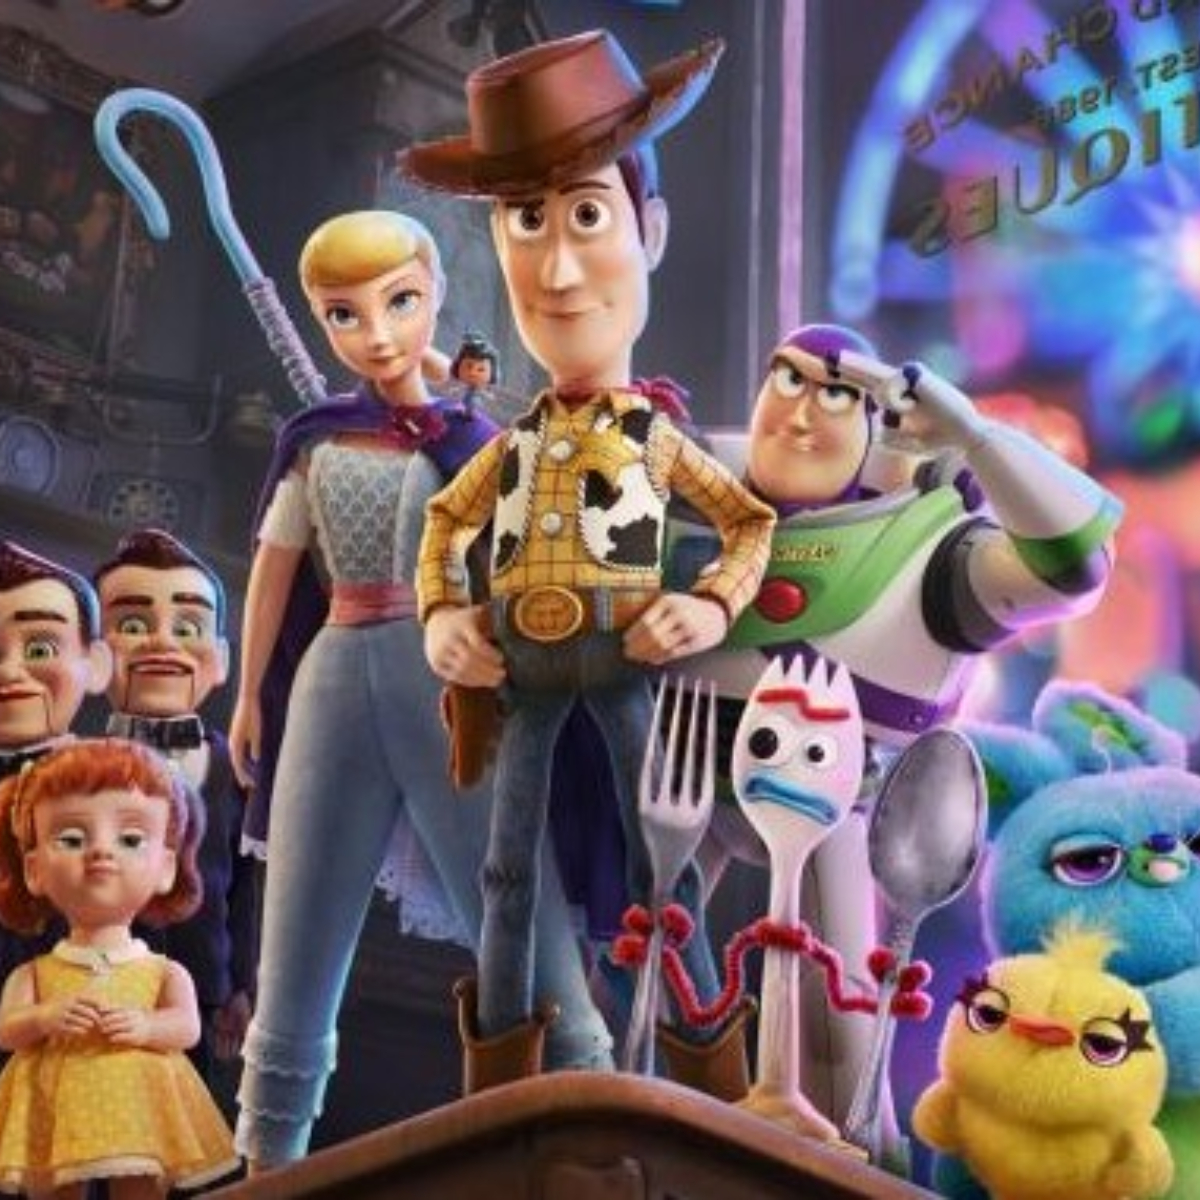 Toy Story: The film poster signed by Steve Jobs to be auctioned in the US; Details inside